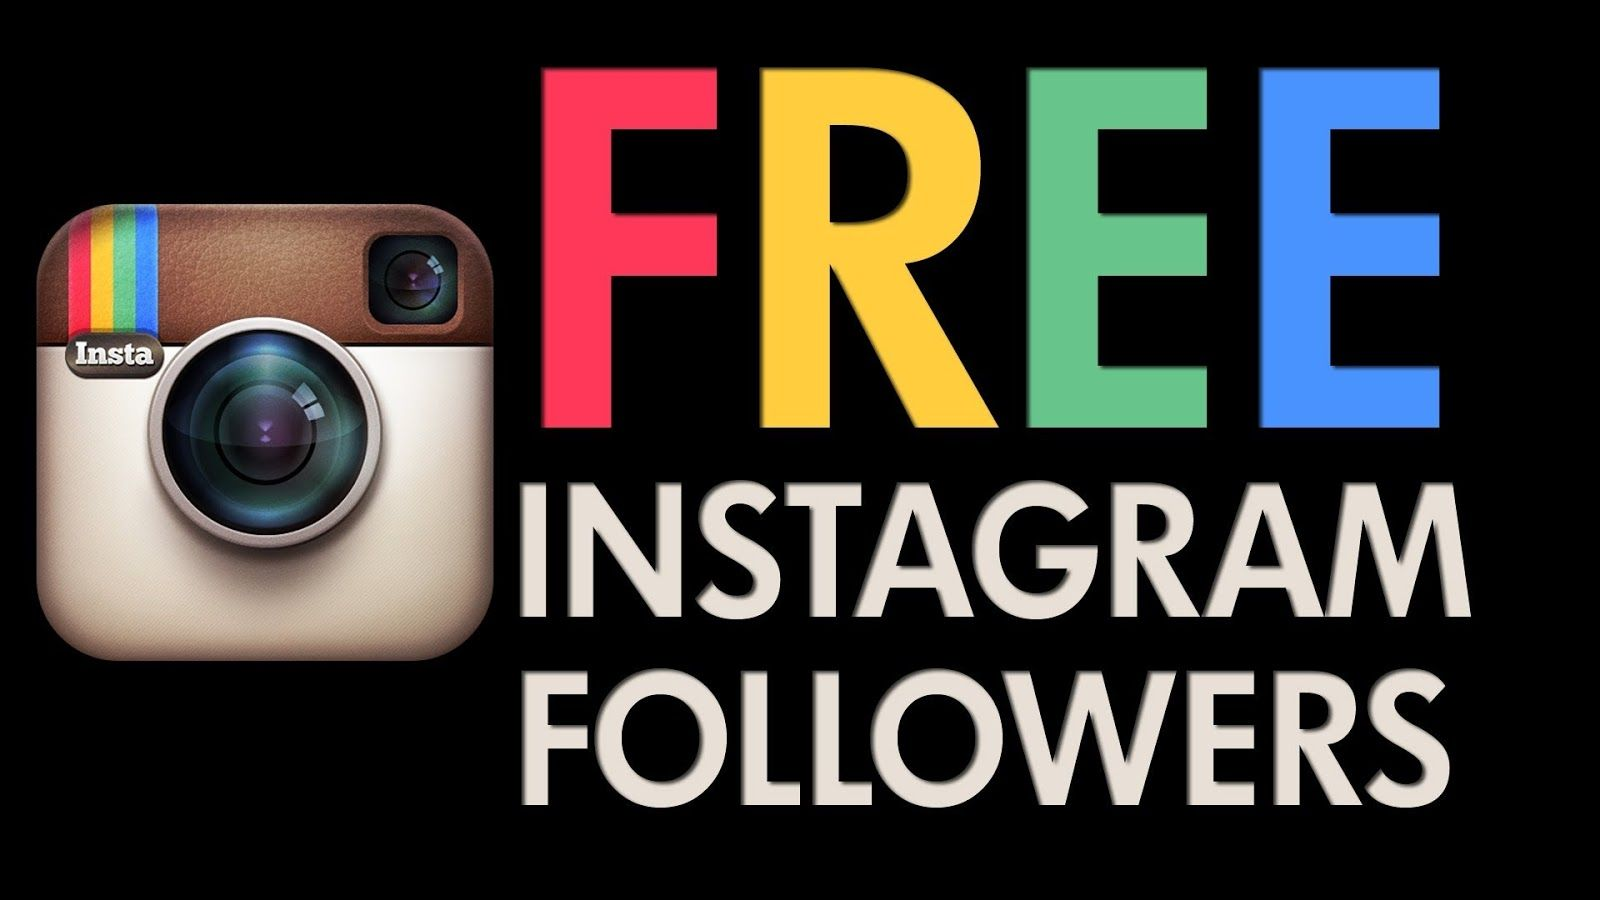 Pin by Win Smm on FREE Instagram Followers in 2019 | Get instagram